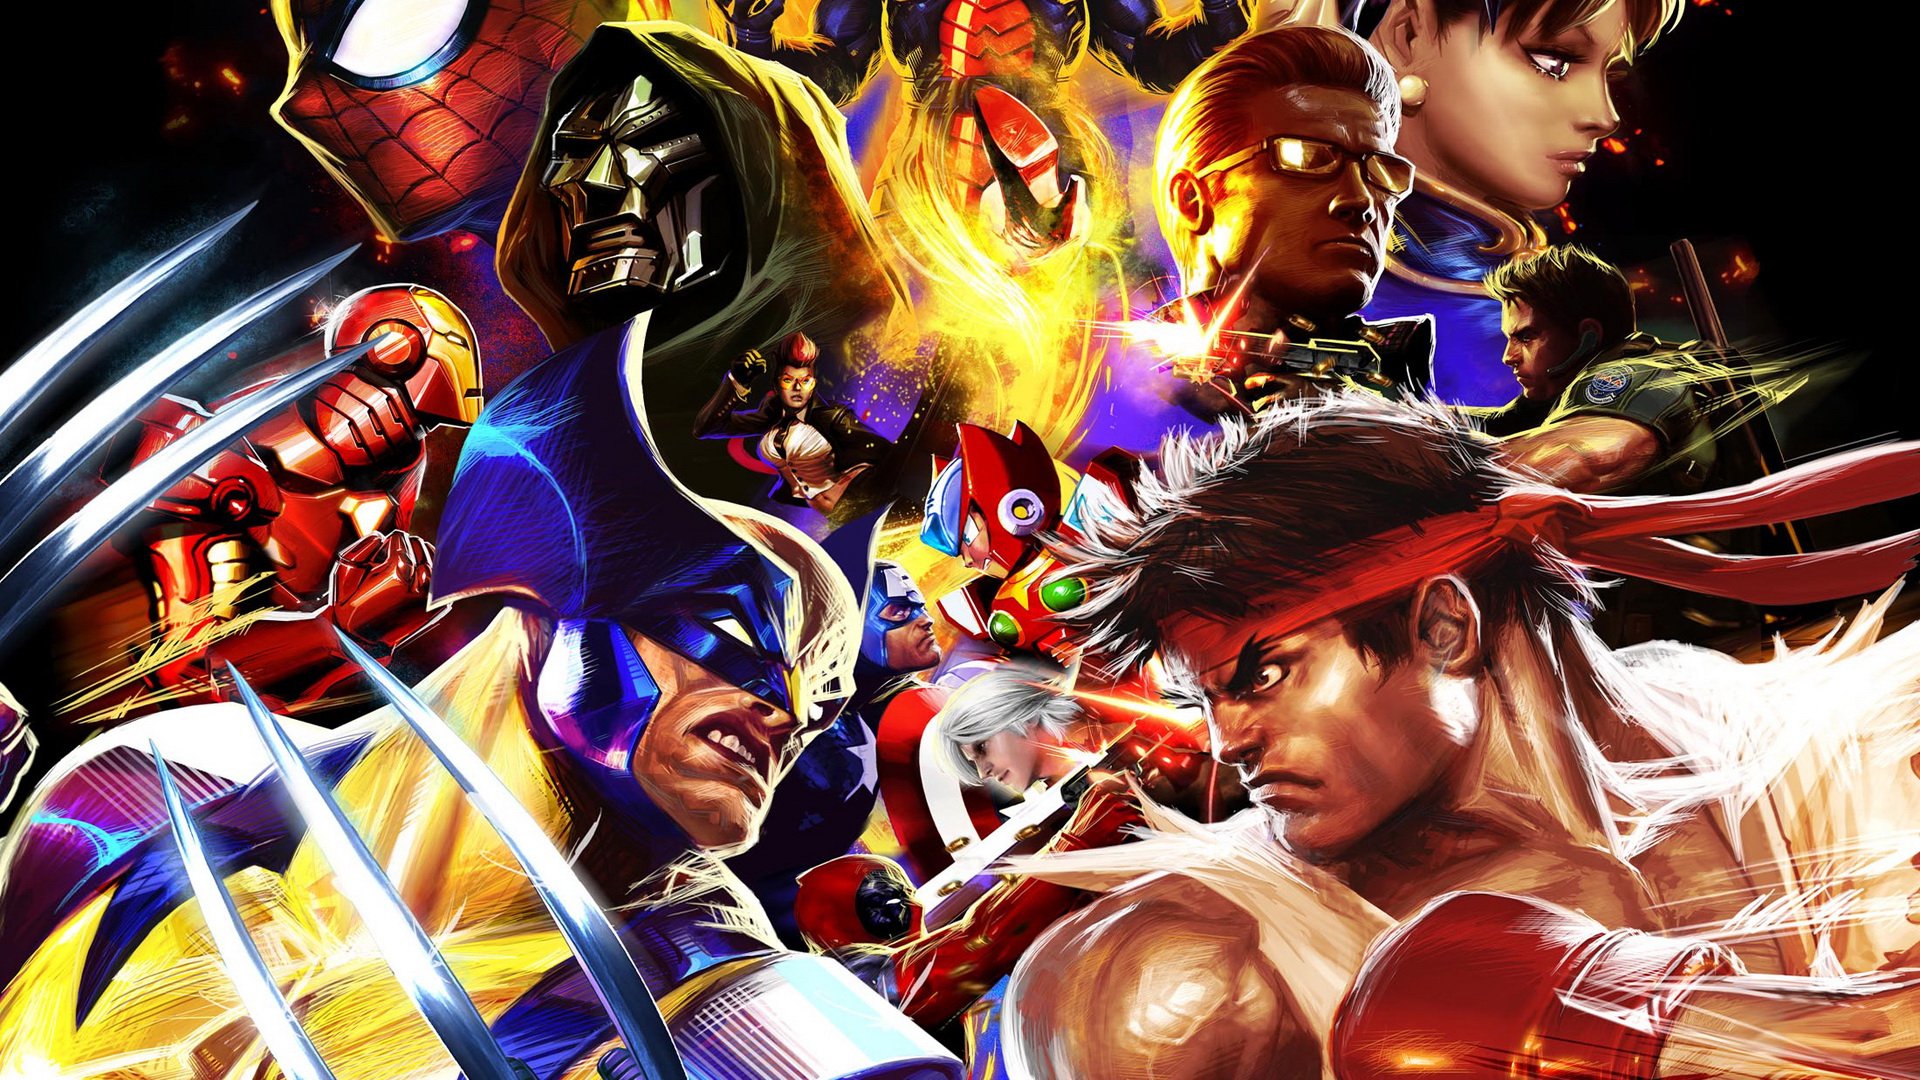 Game HD Wallpapers Playstation 3 Wallpapers Video Games marvel vs 1920x1080